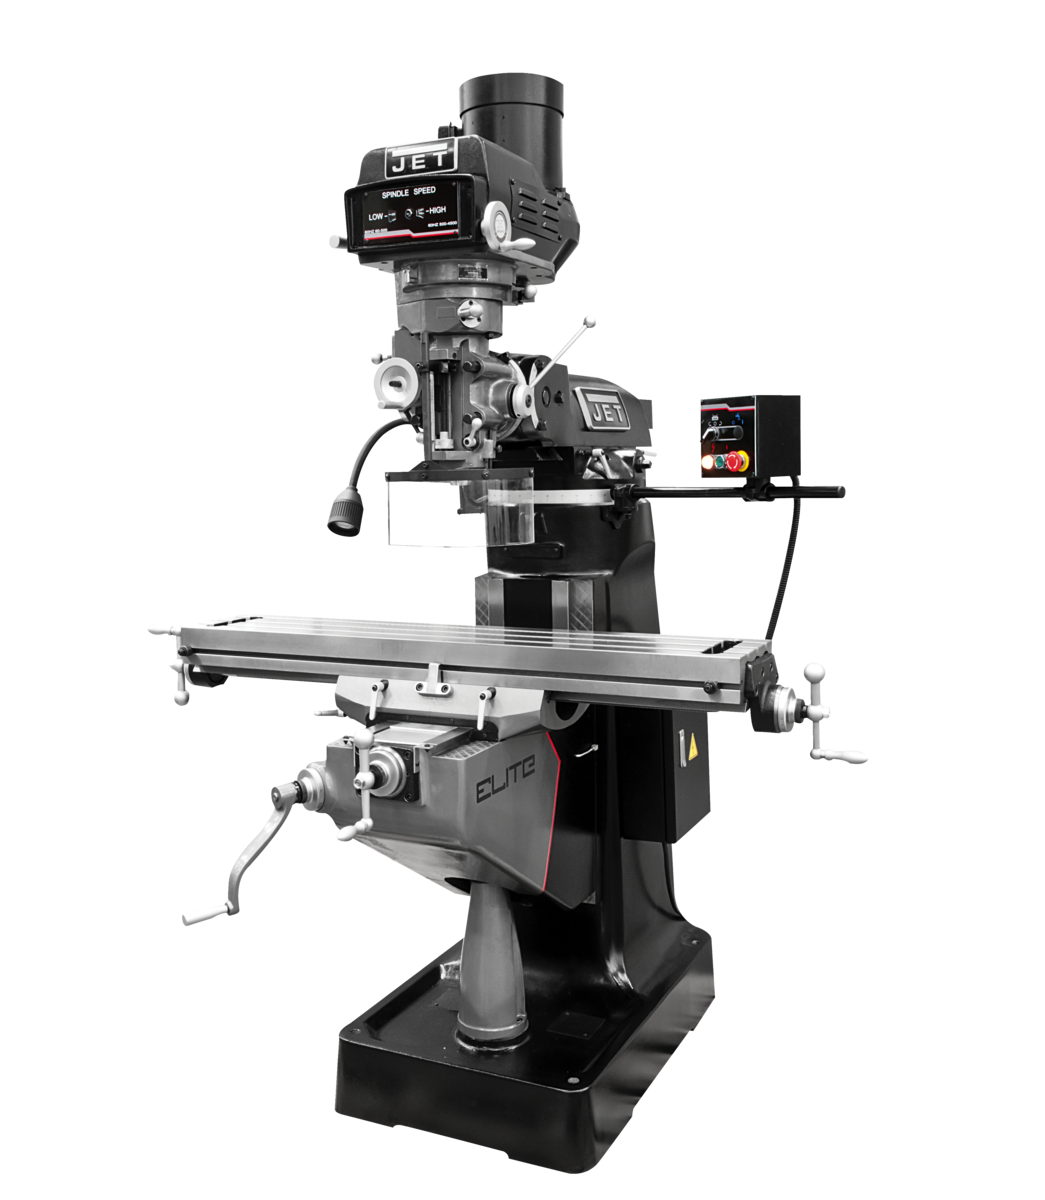 ETM-949 Mill with 3-Axis Newall DP700 (Knee) DRO and Servo X, Y, Z-Axis Powerfeeds and USA Air Powered Draw Bar